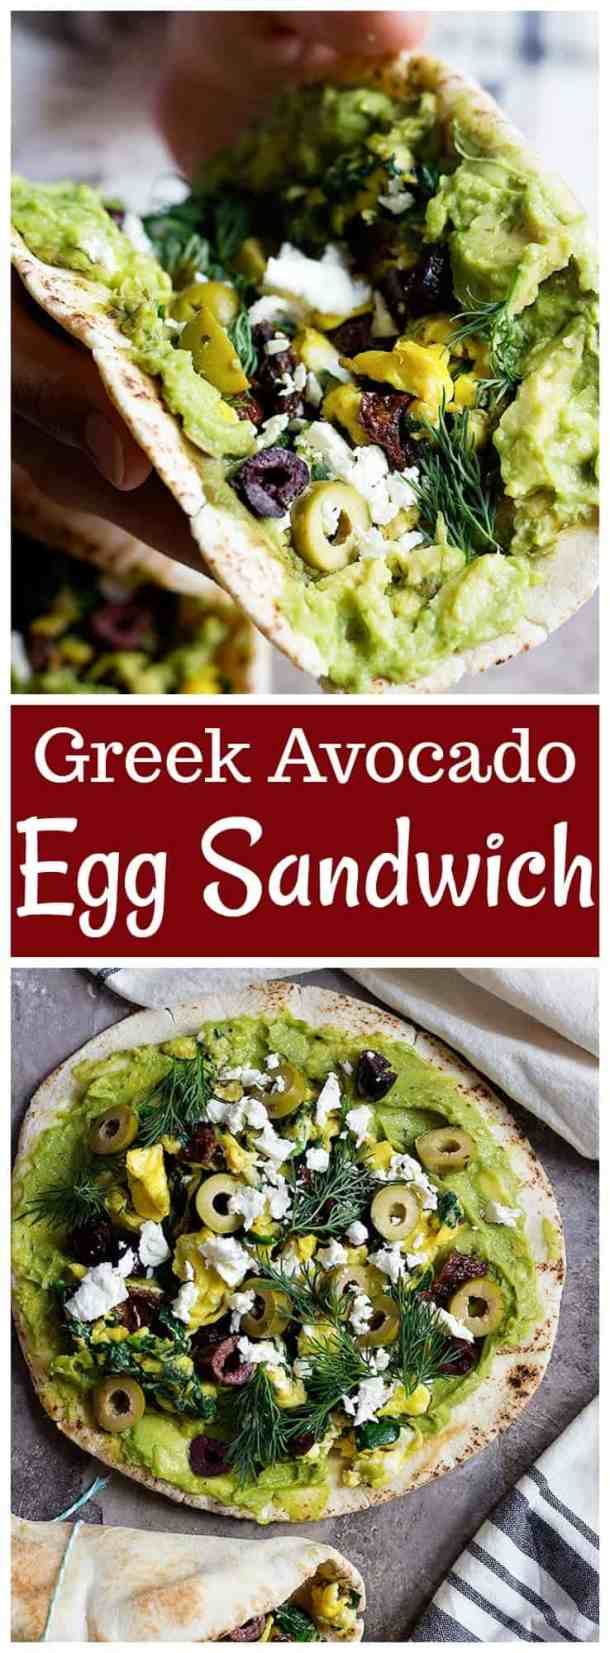 Avocado Egg Sandwich | Avocado sandwich | avocado Egg breakfast | Avocado toast | Greek Avocado breakfast | Mediterranean breakfast | Greek breakfast | easy breakfast sandwich | healthy breakfast sandwich | #breakfast #sandwich #breakfastsandwich #easybreakfast